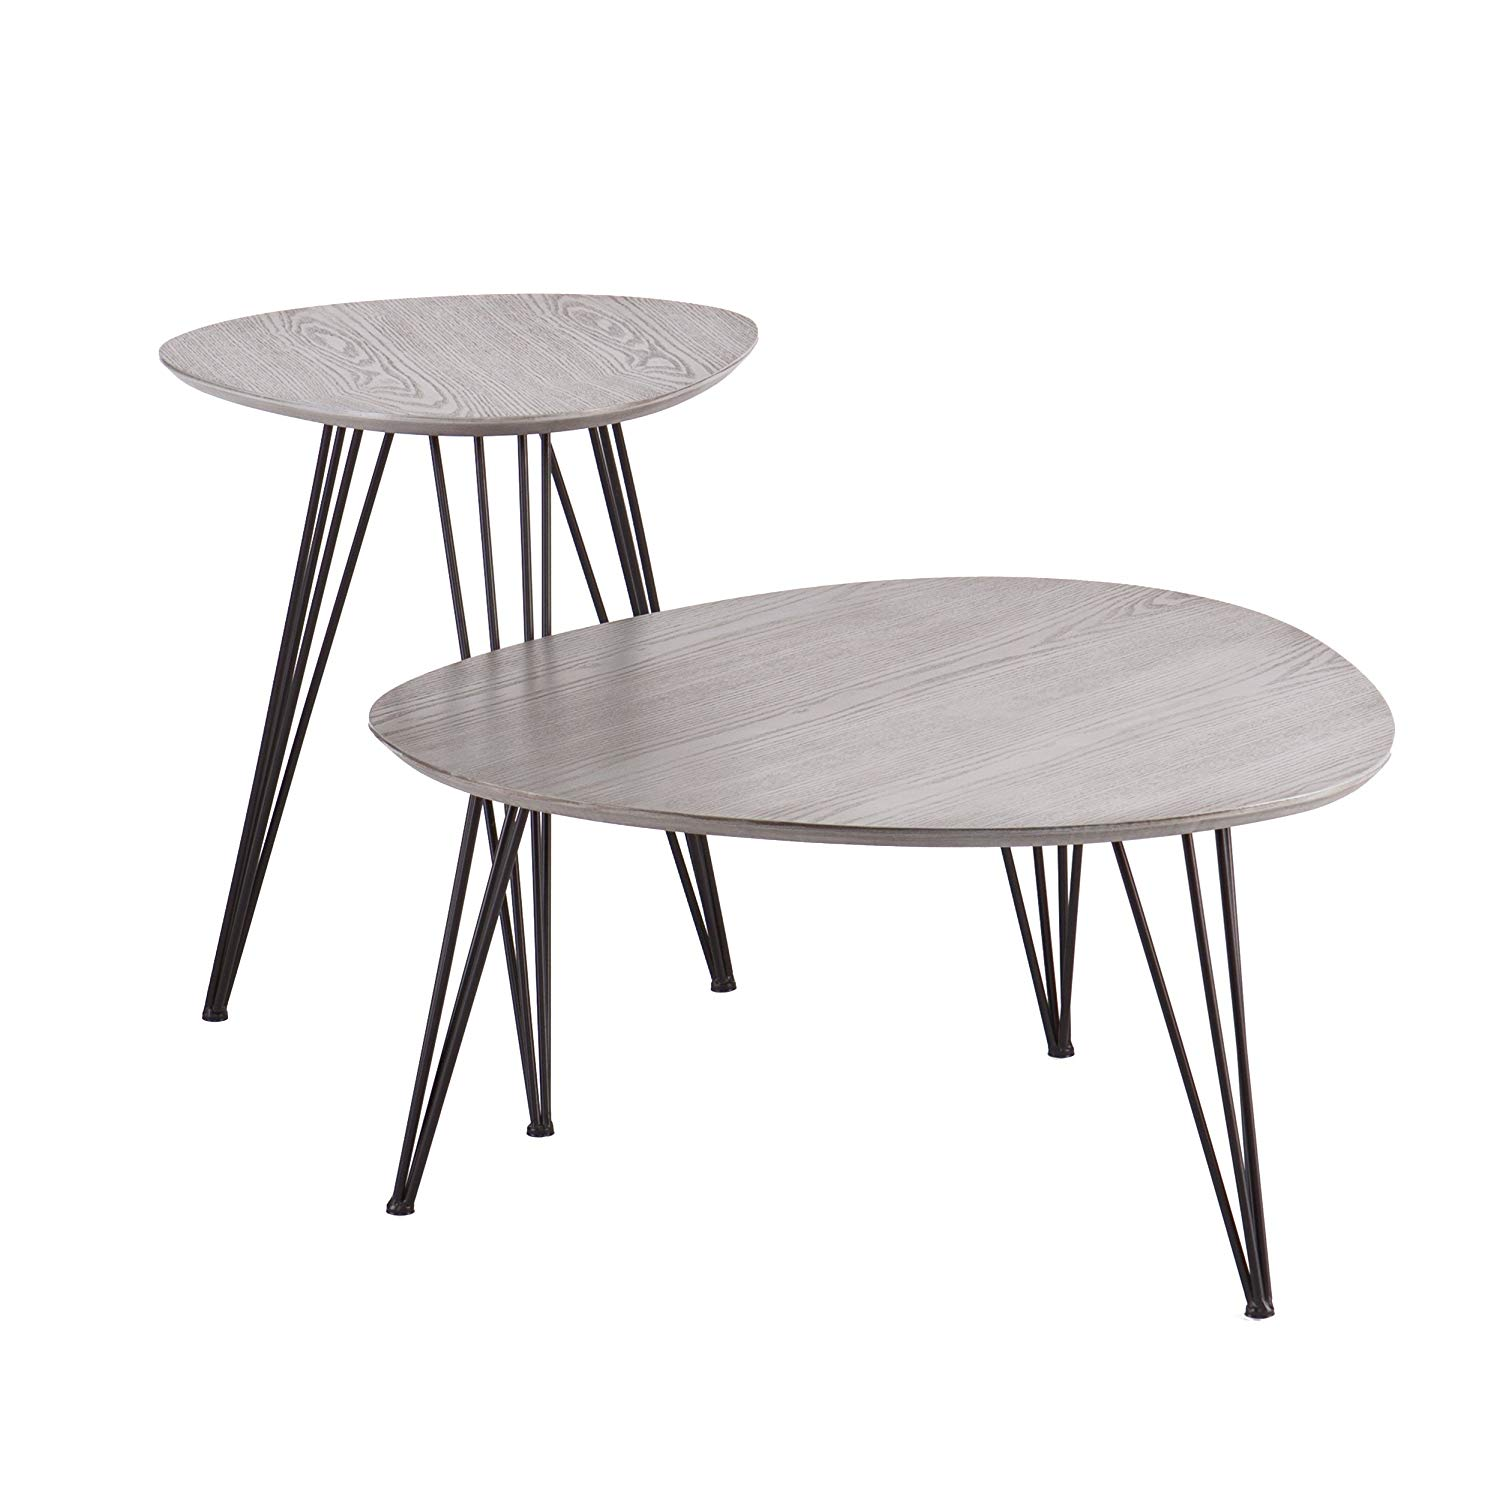 holly martin bannock accent table set matte gray room essentials hairpin with black finish kitchen dining west elm mallard lamp white and wood end retro furniture folding garden